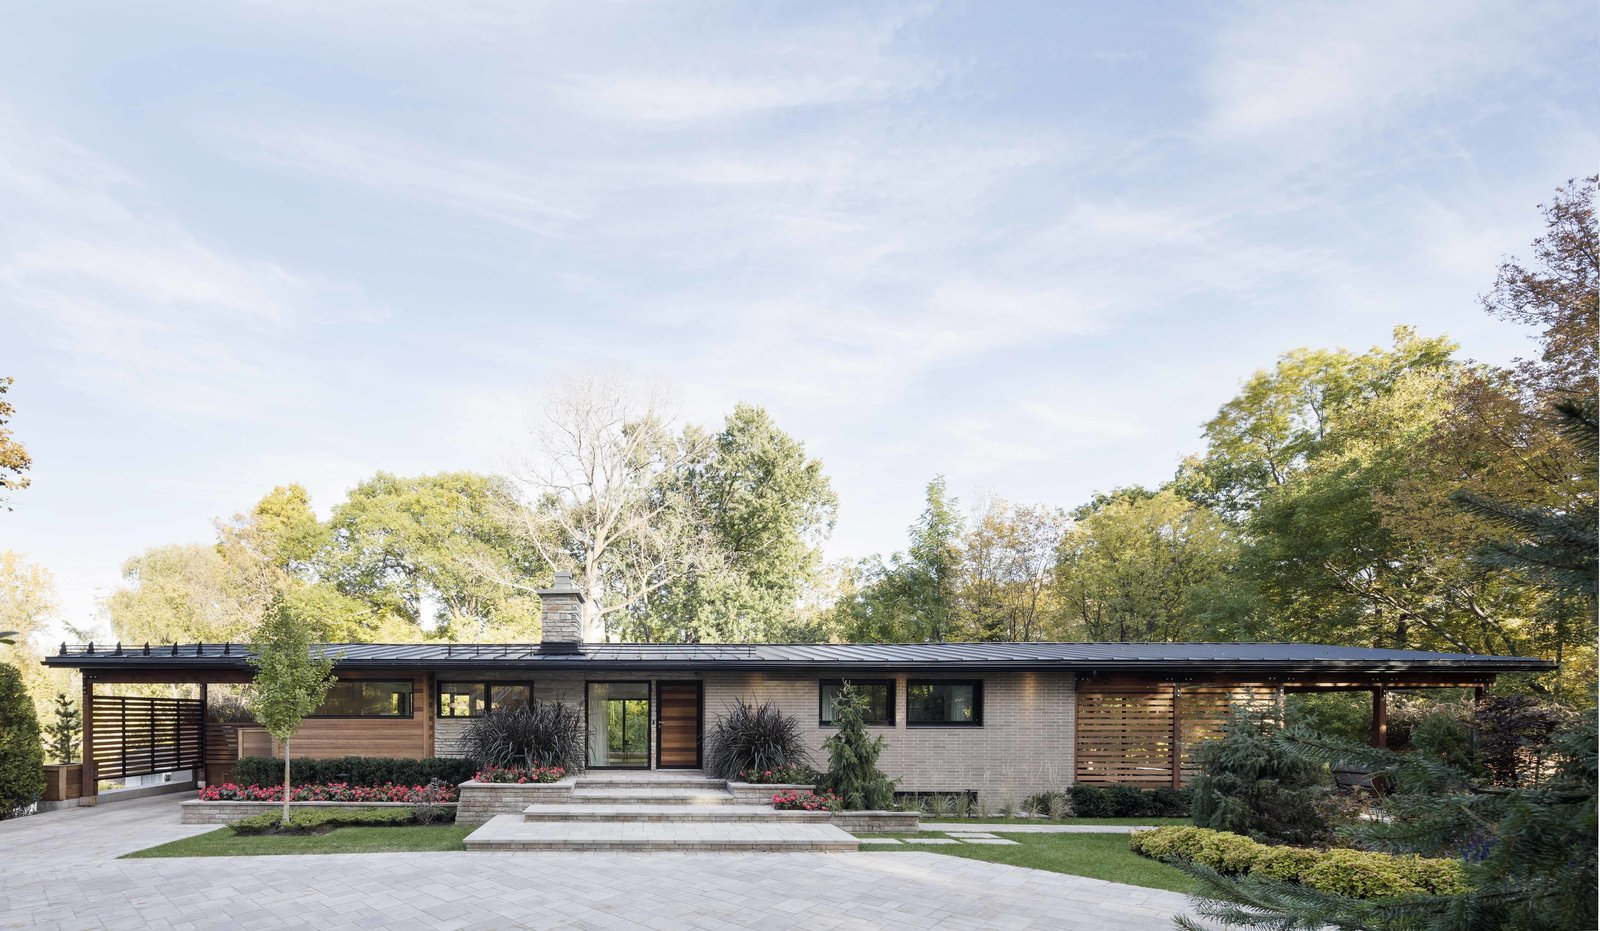 The horizontal layout of the home allows for easy movement throughout the interior, while the line of the continuous roof seems to extend into the trees. Enlarging the opening of the home allowed for impressive views of the river and surrounding area.